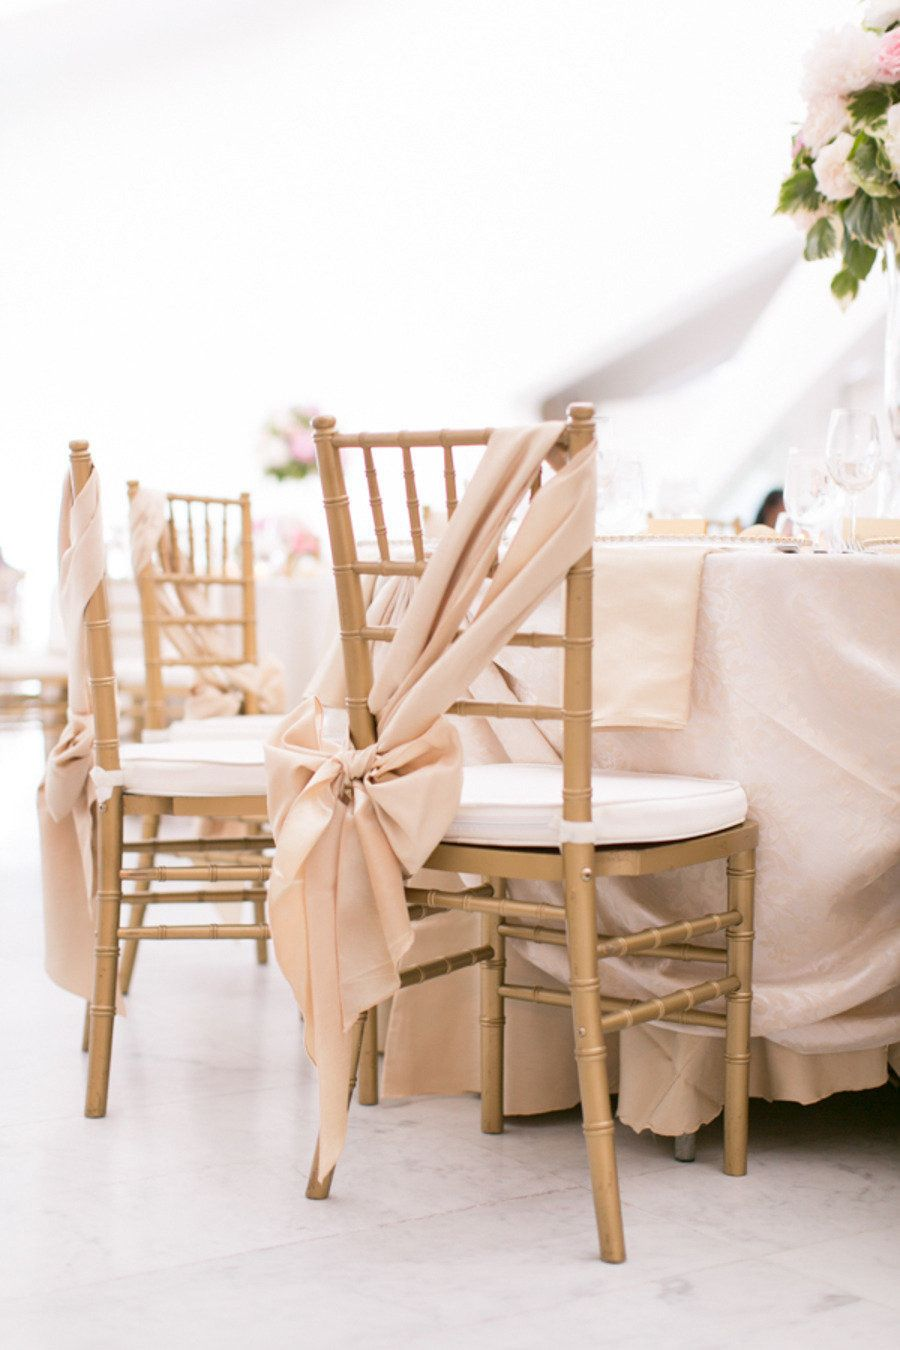 Wedding Chair Sash Antique Childs Rocking Value Milwaukee From Heather Cook Elliott Photography Sashes For Just B G Chairs Or Tuscan Table Only